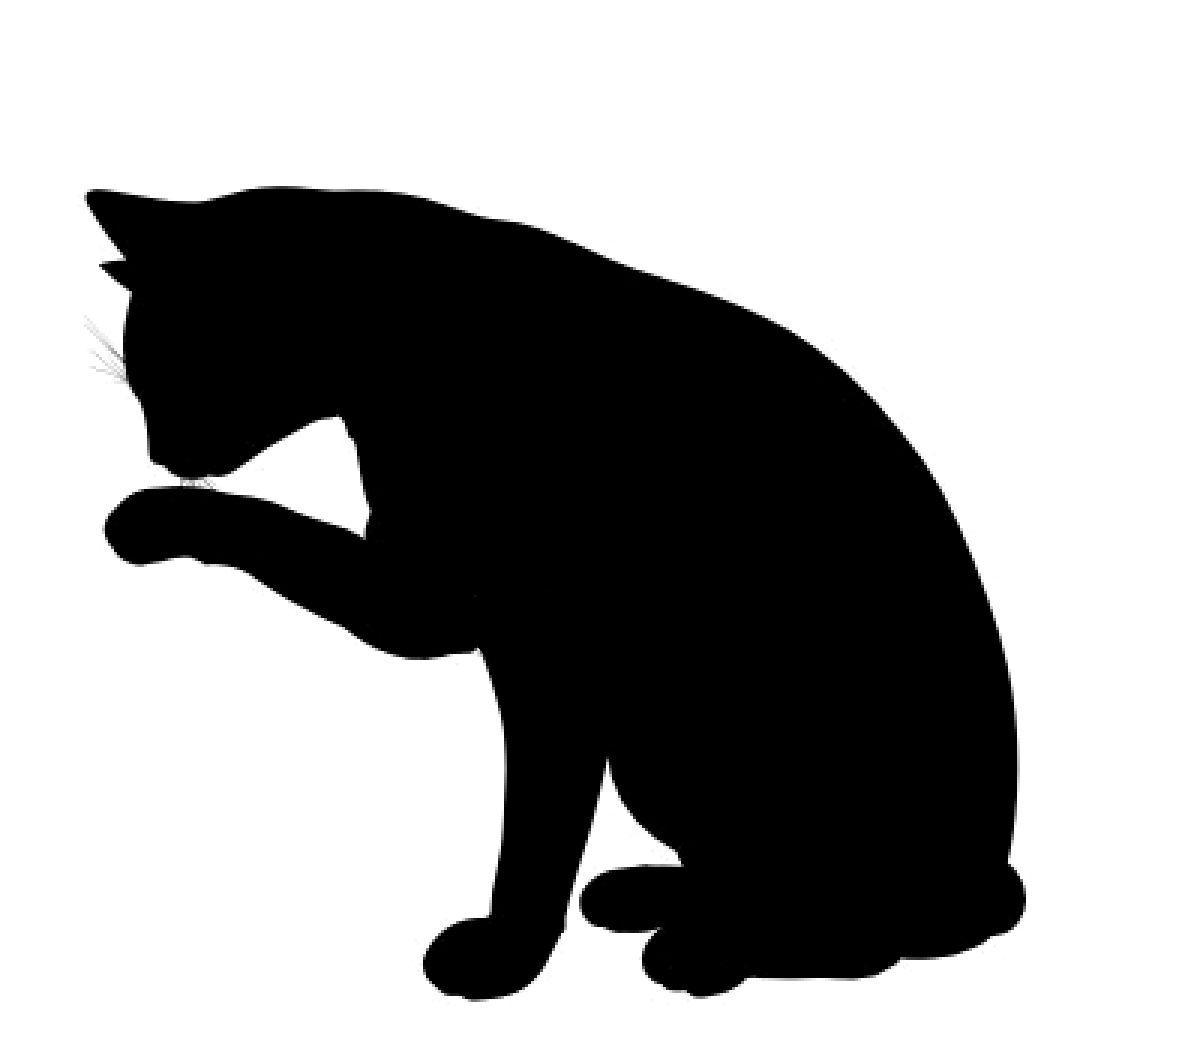 Black Cat Silhouette Clip Art